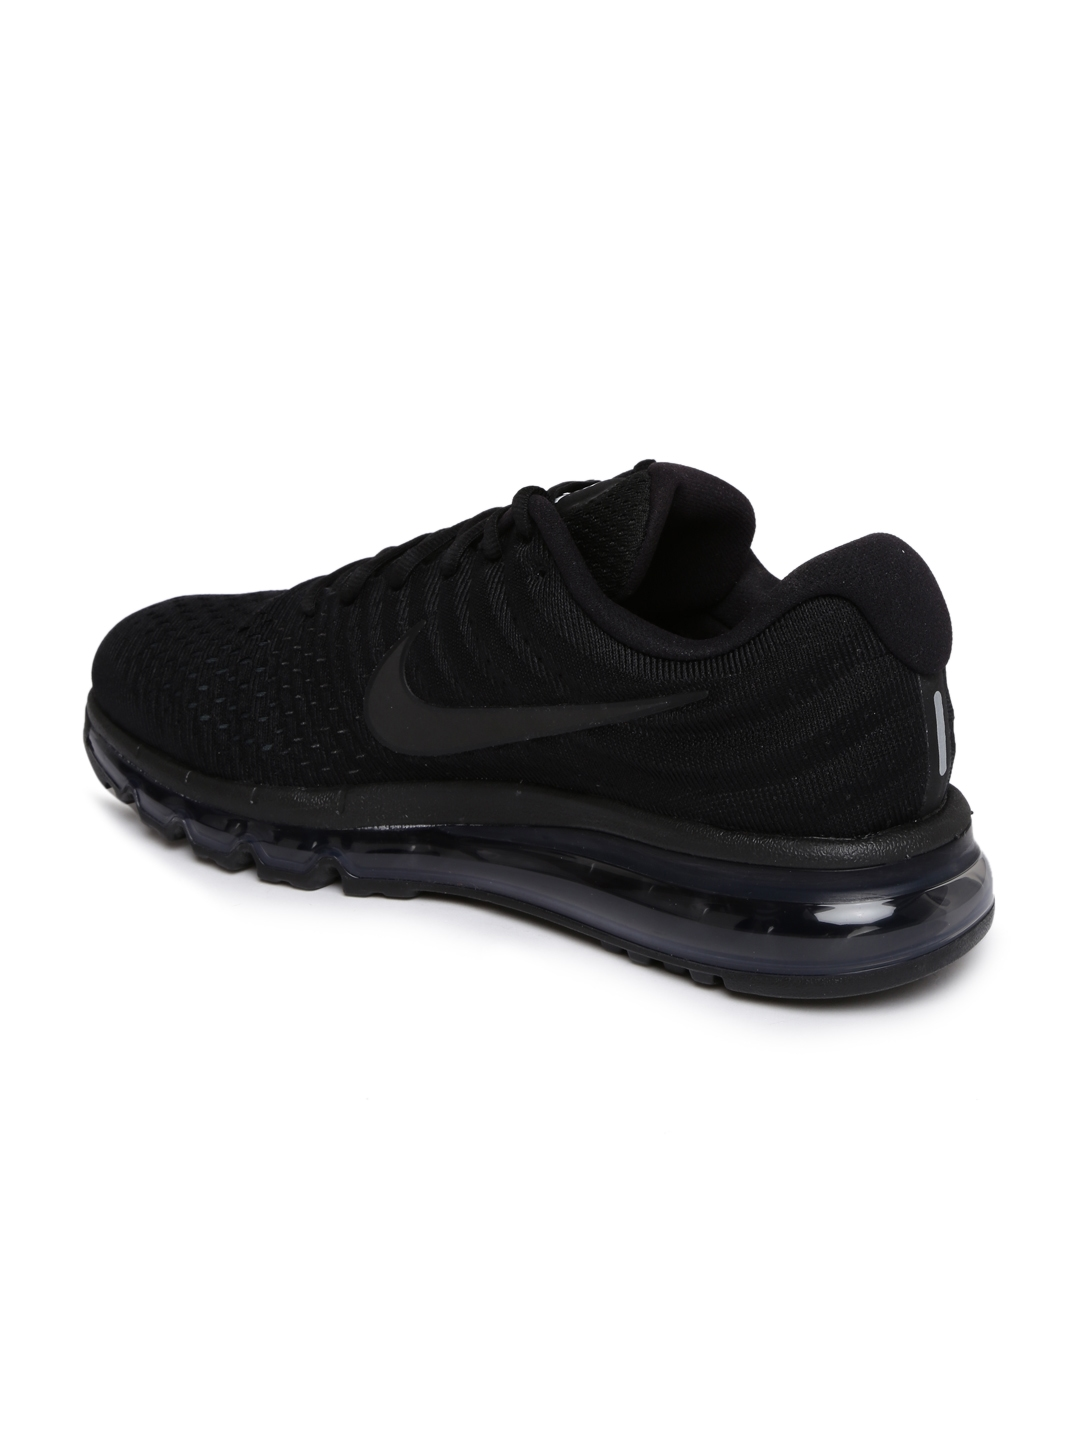 Nike Buy Shoes Max Black 2017 Men Air For Running Sports ApWpgdB